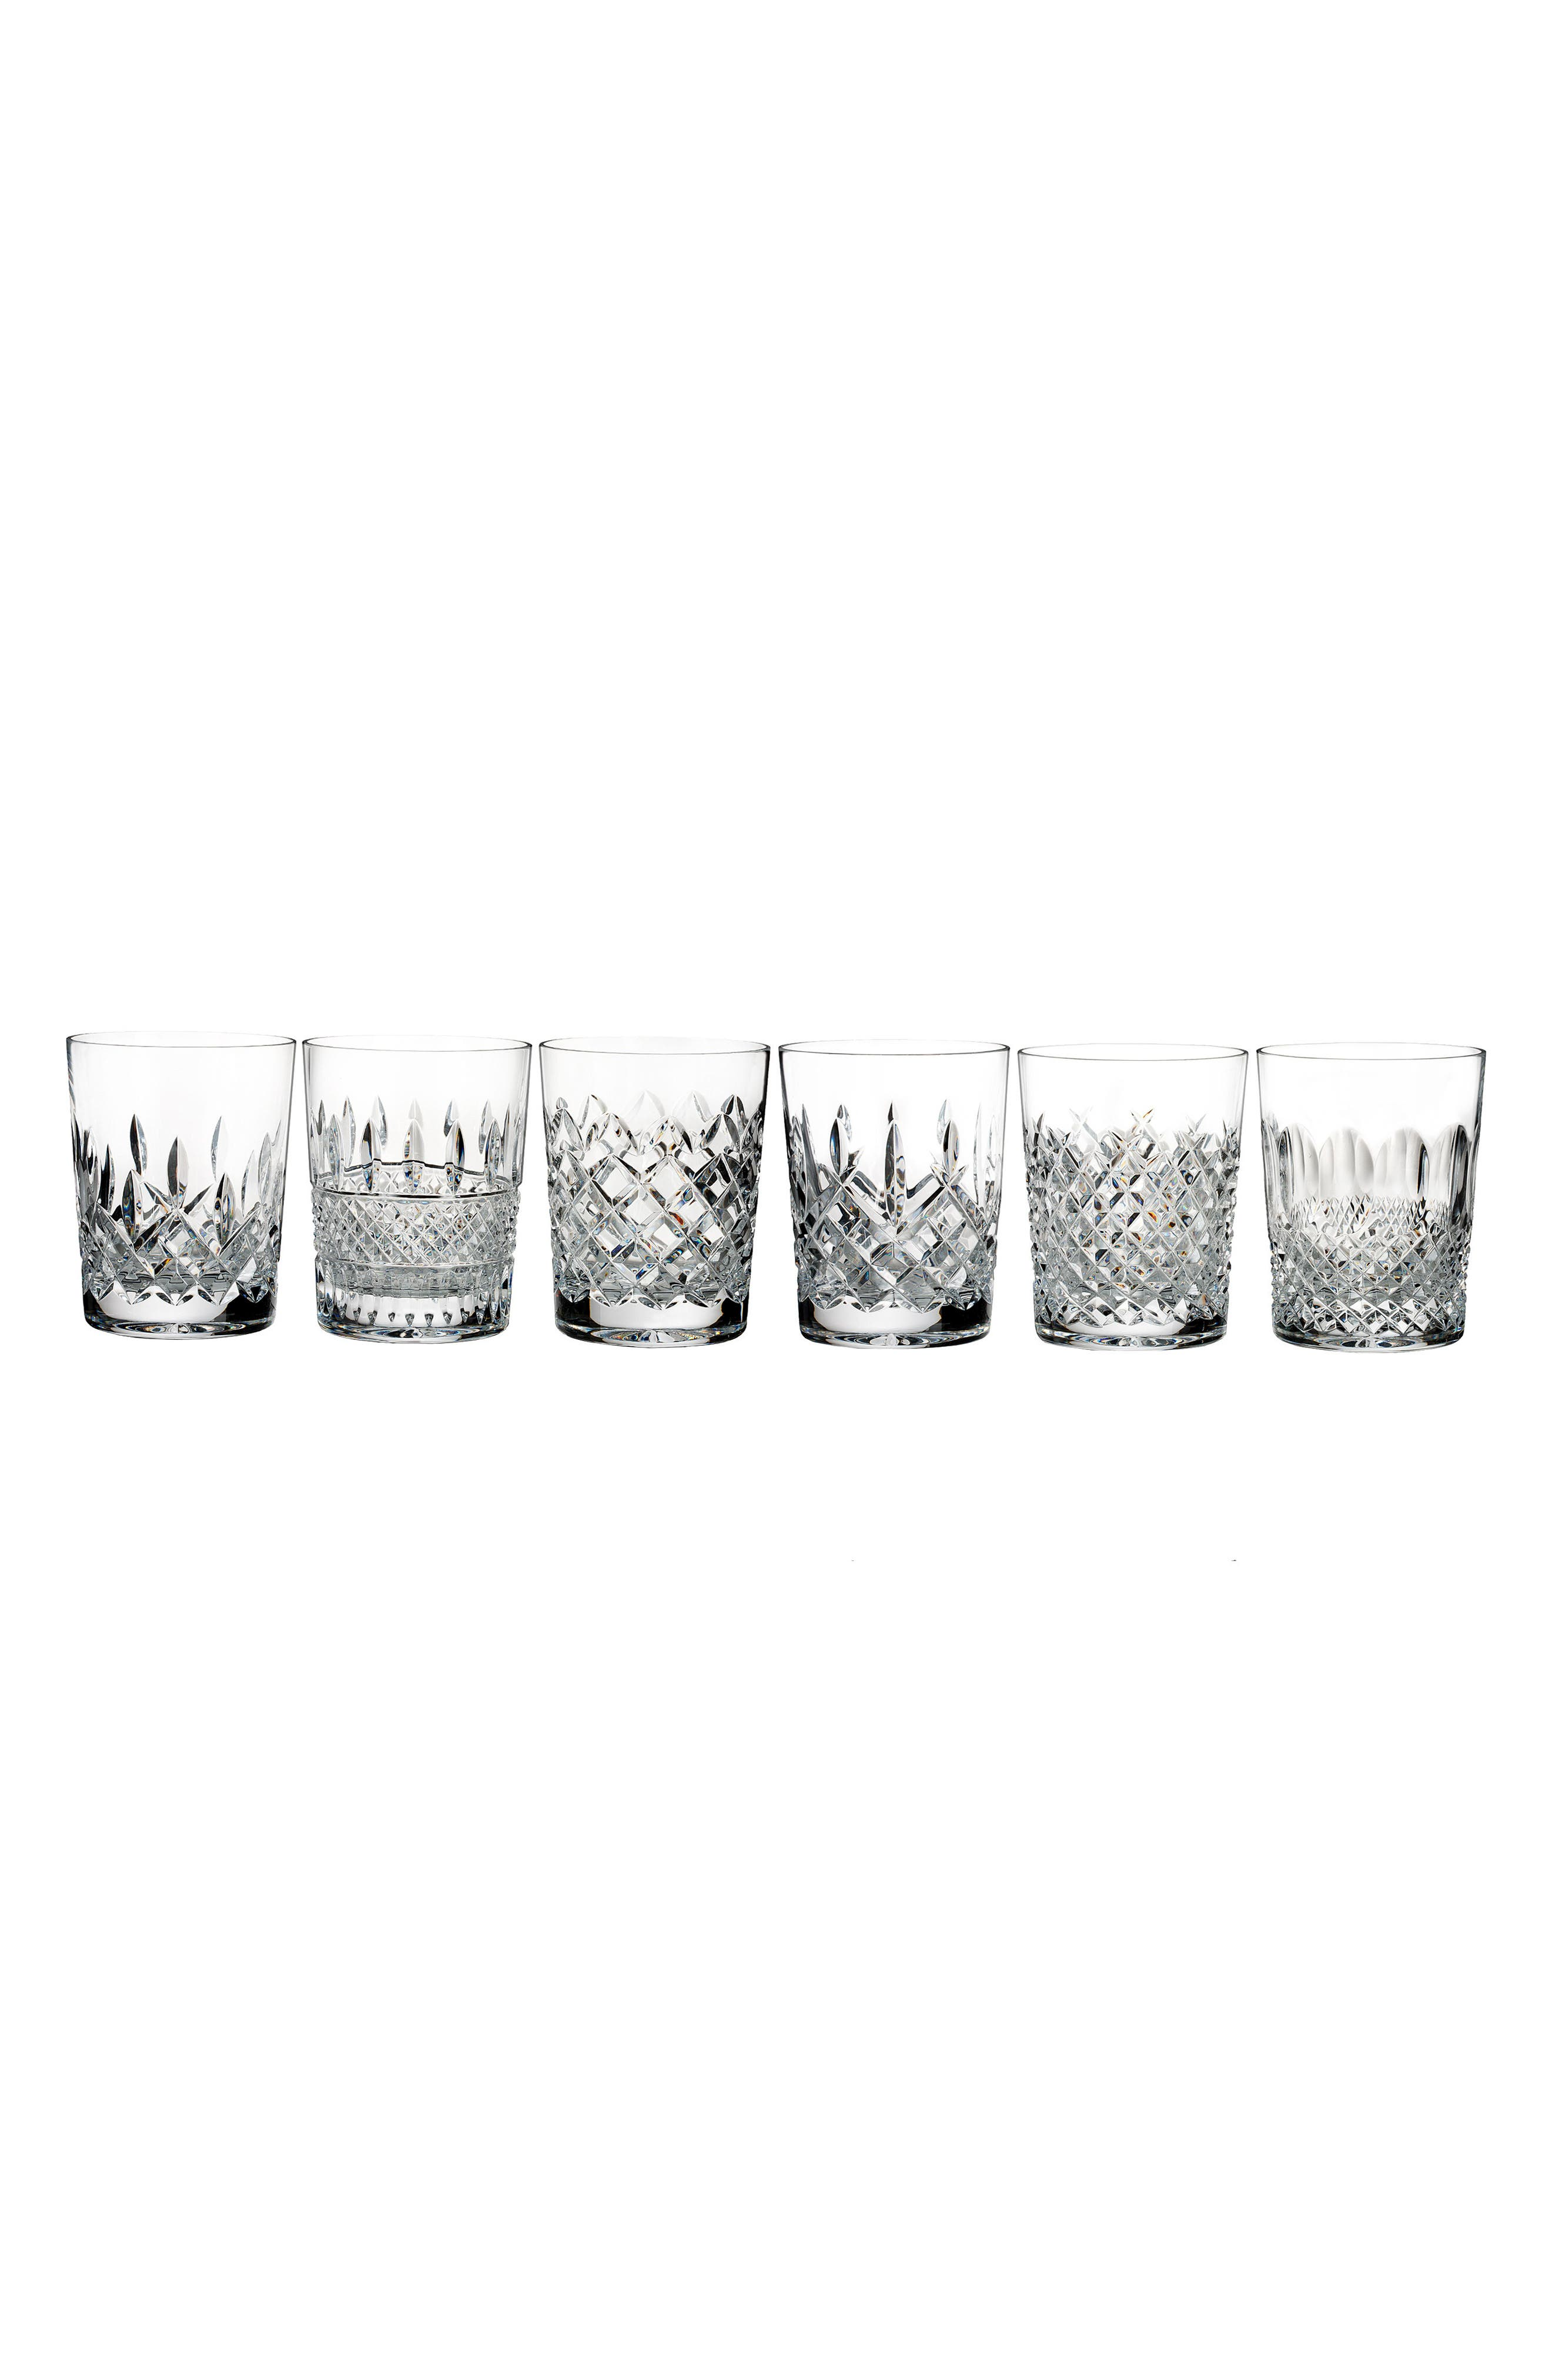 Connoisseur Set of 6 Lead Crystal Double Old Fashioned Glasses,                         Main,                         color, Crystal